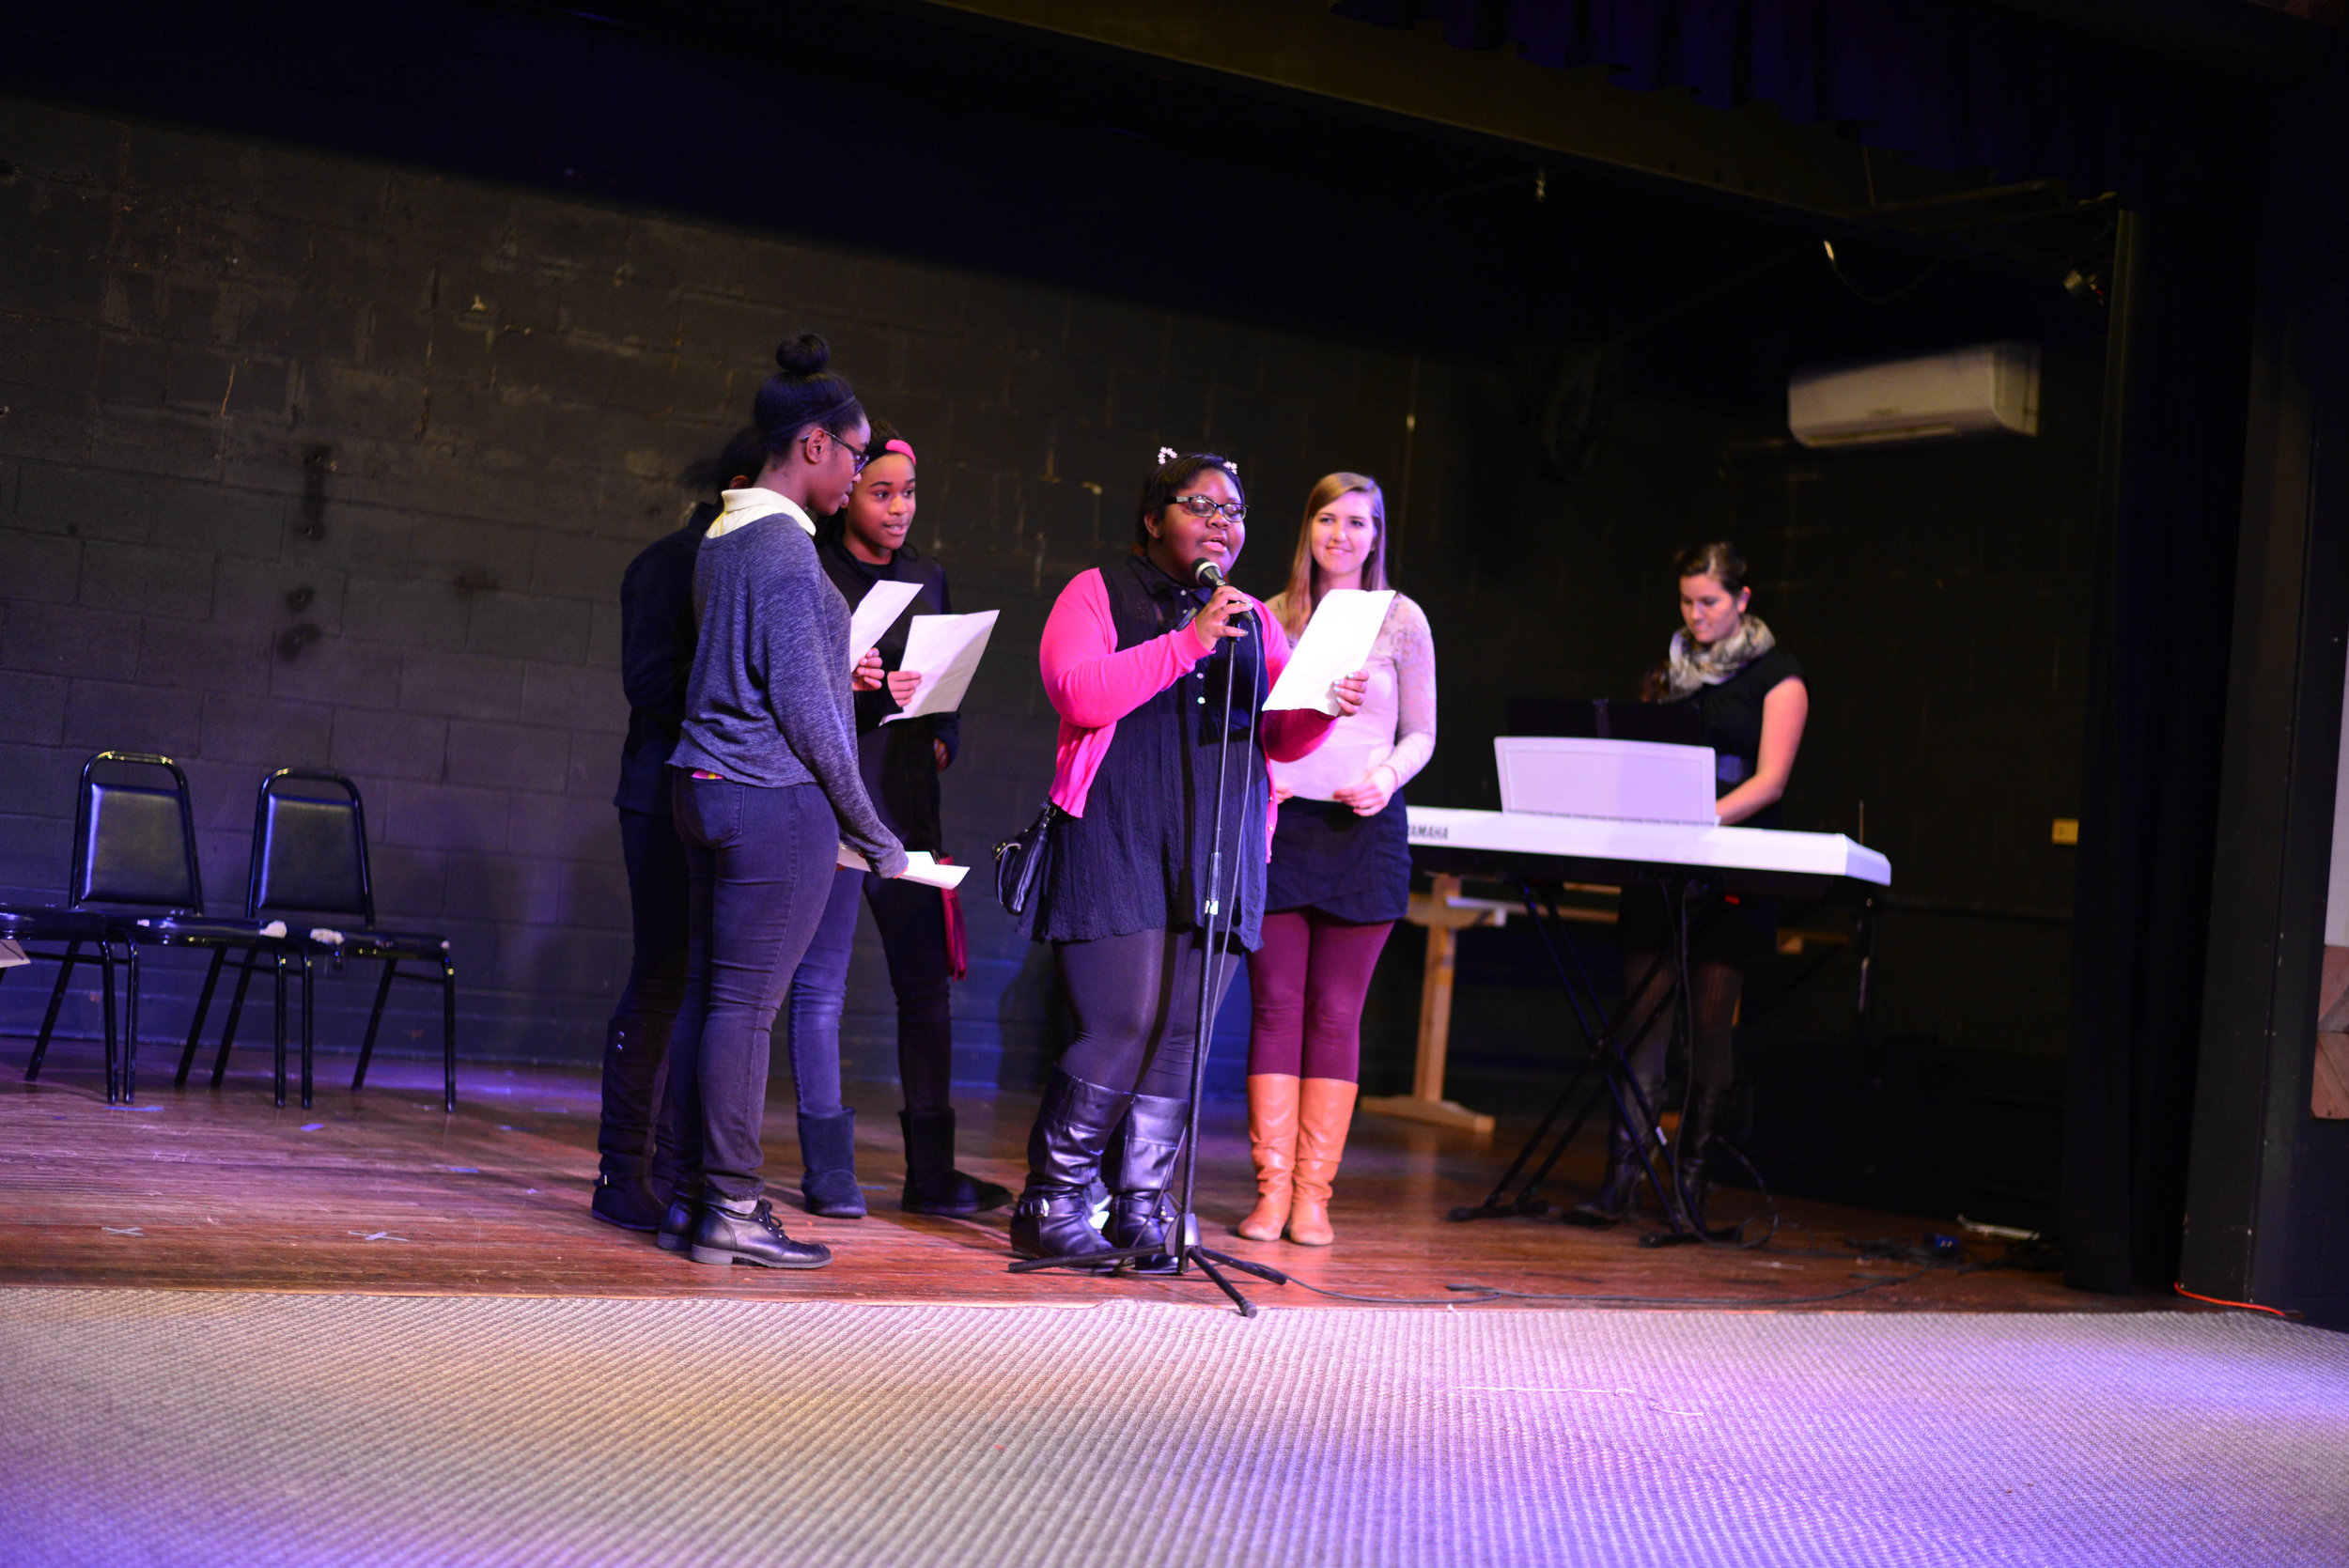 """A group of girls participated in a chorus group led weekly by Rebekah Davis. They learned various parts and harmonies, culminating in a performance of """"A Thousand Years"""" at our ShowCASE event."""